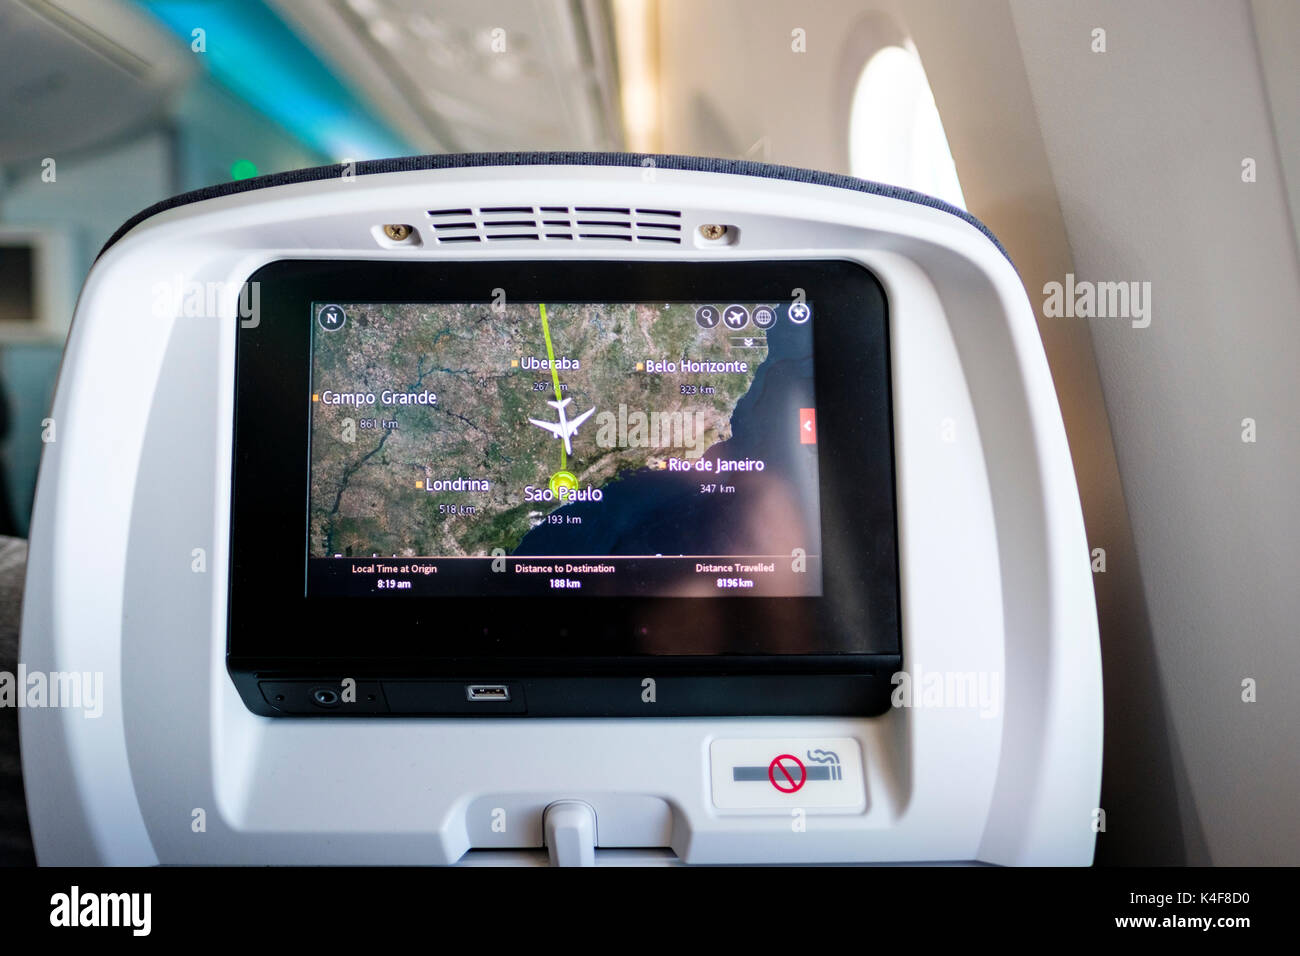 Boeing 787 headrest screen showing destination information, route map, airplane arriving in Sao Paulo, Brazil - Stock Image